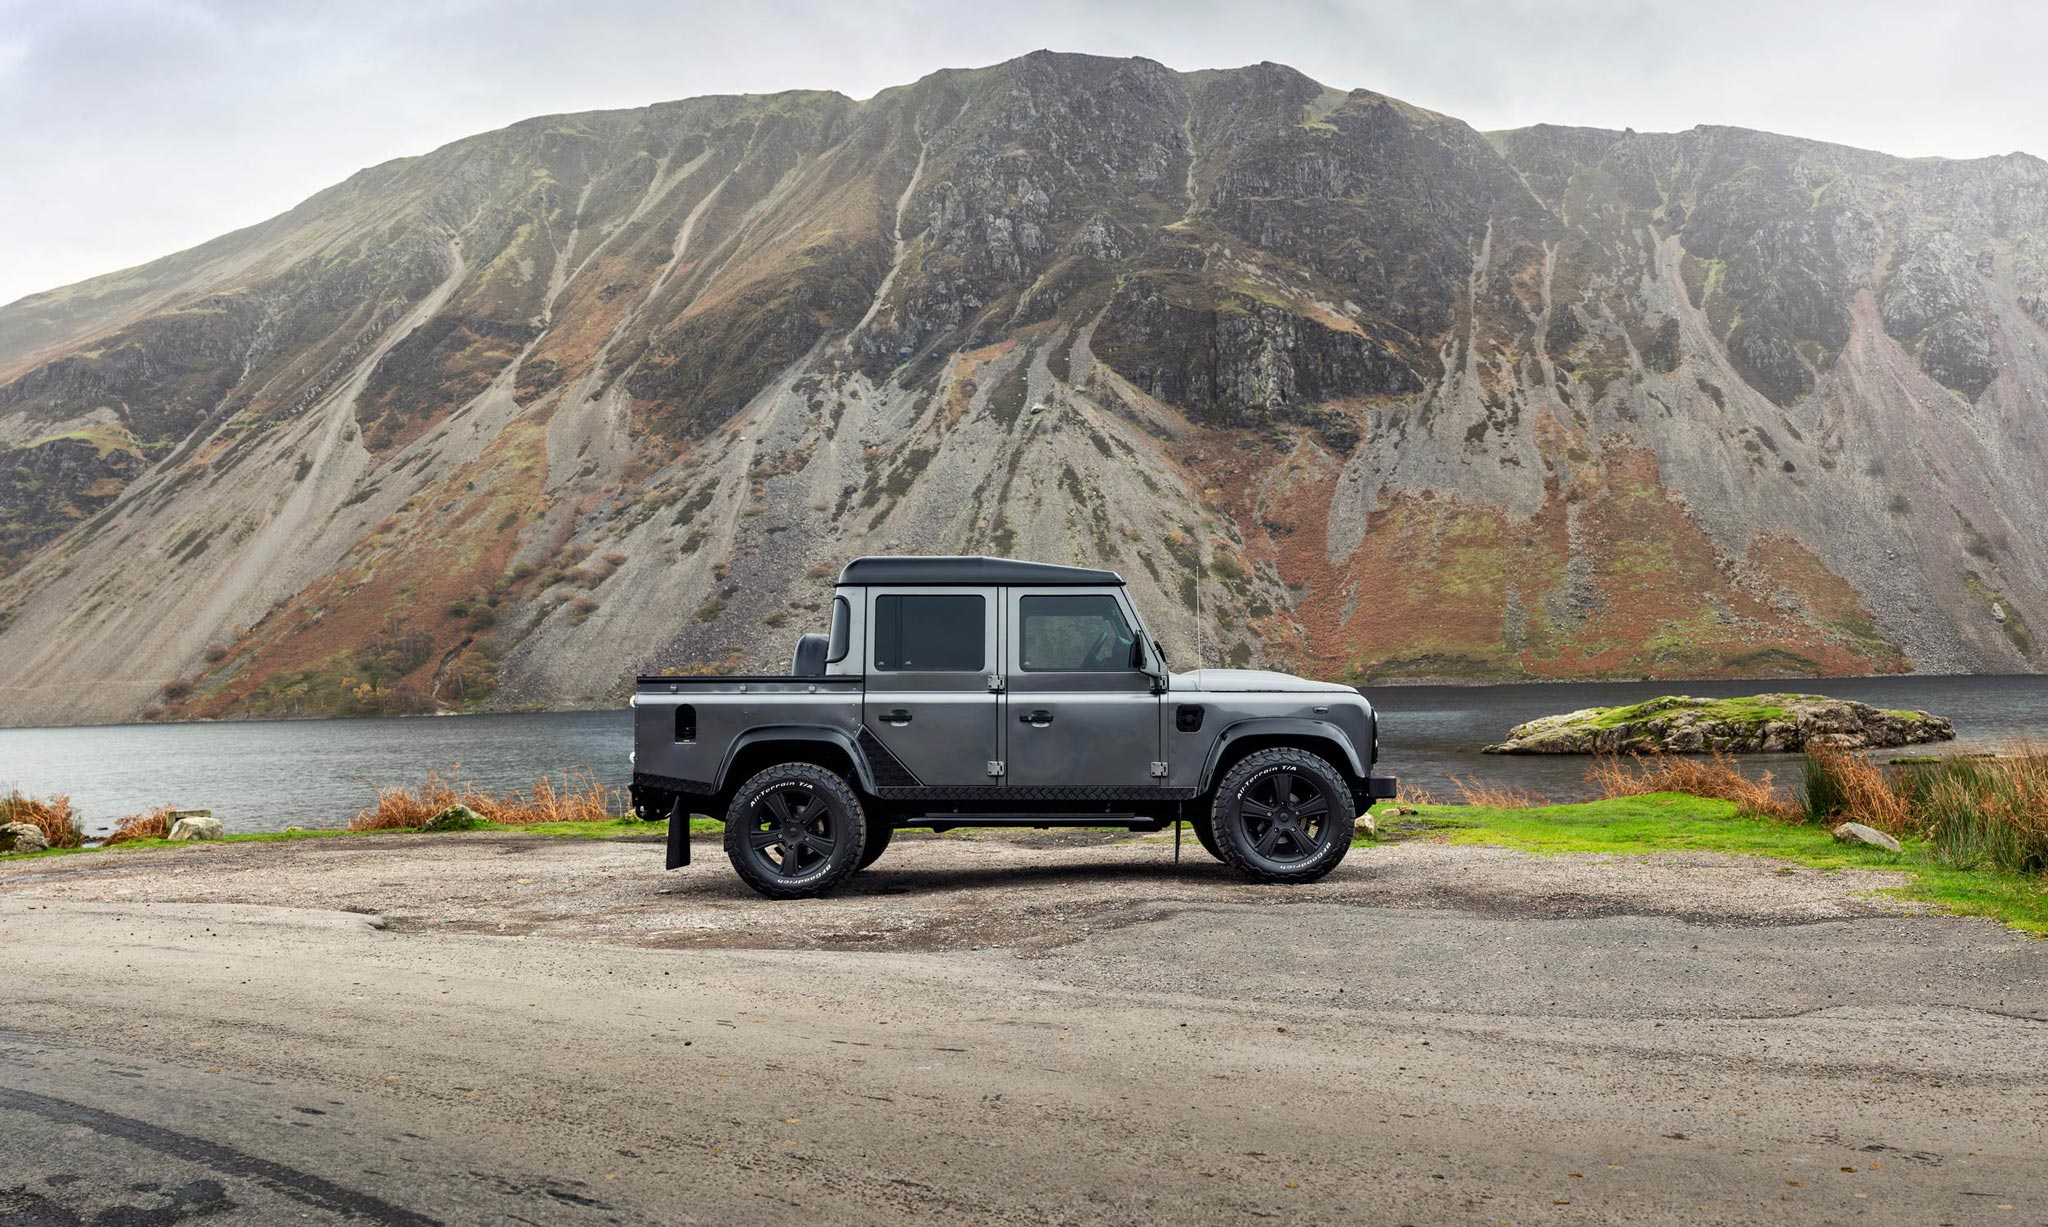 Bespoke Defender 4x4 photography shot by Dean Wright